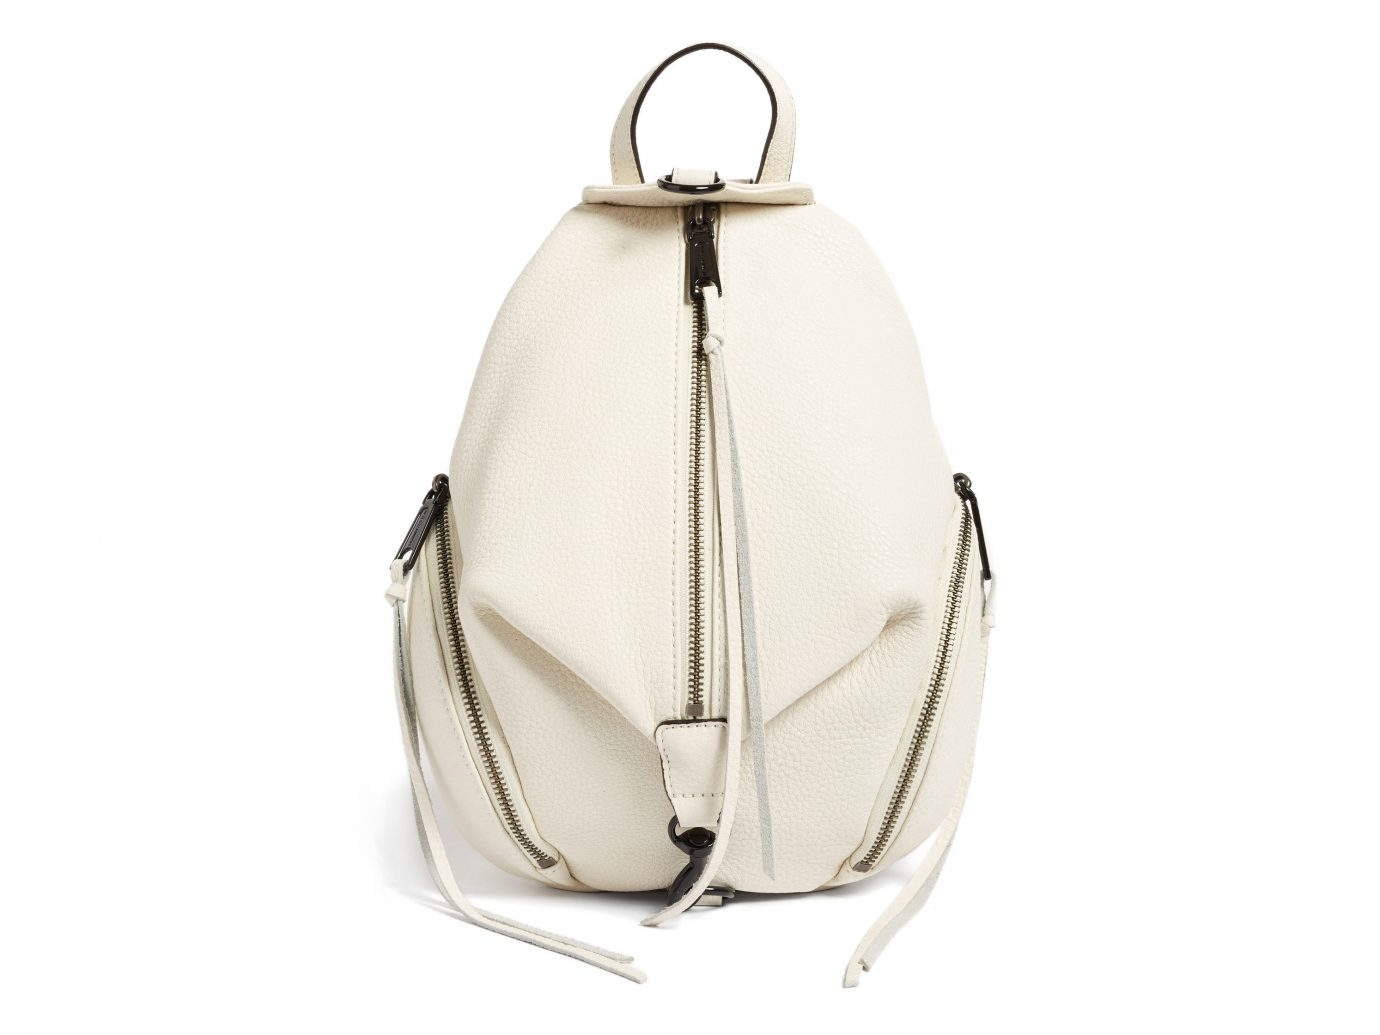 Style + Design white indoor bag handbag beige shoulder bag product product design